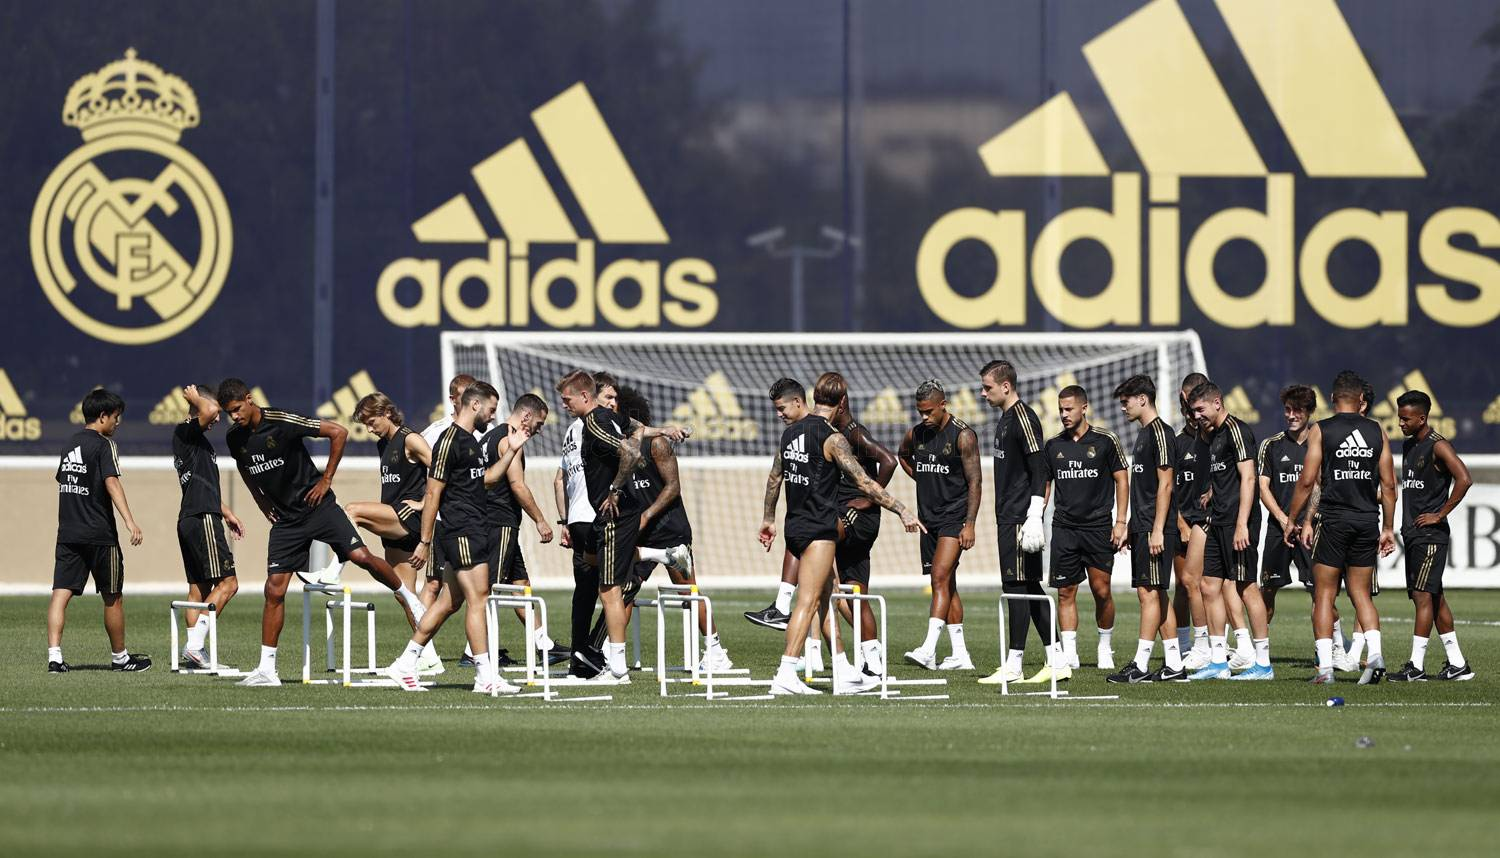 Real Madrid - Entrenamiento del Real Madrid  - 01-08-2019